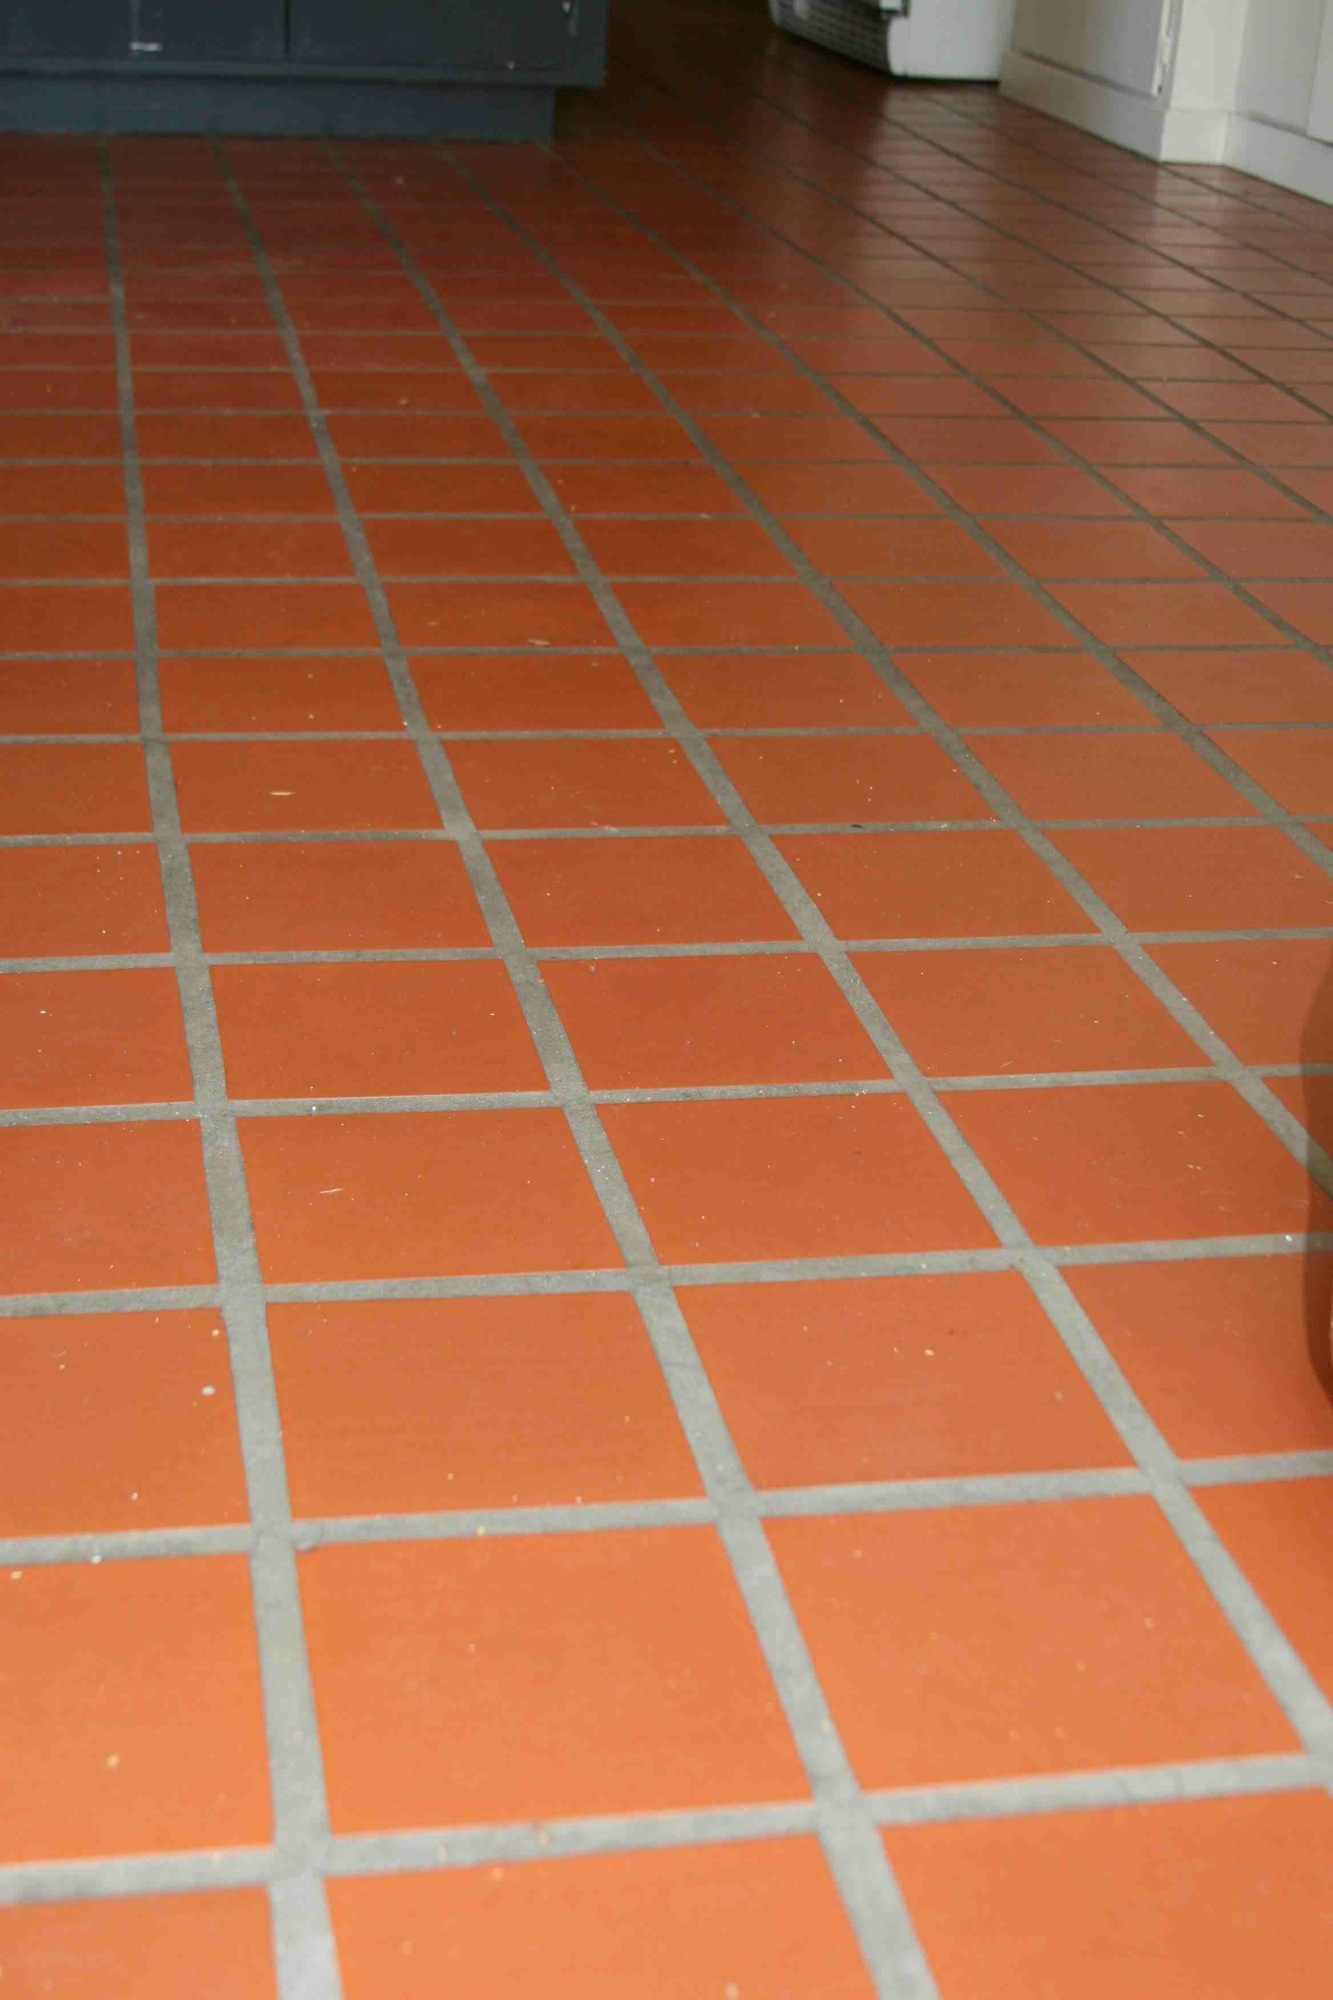 Yay cork flooring going over bad kitchen tile brand hang cork flooring going over bad kitchen tile dailygadgetfo Images